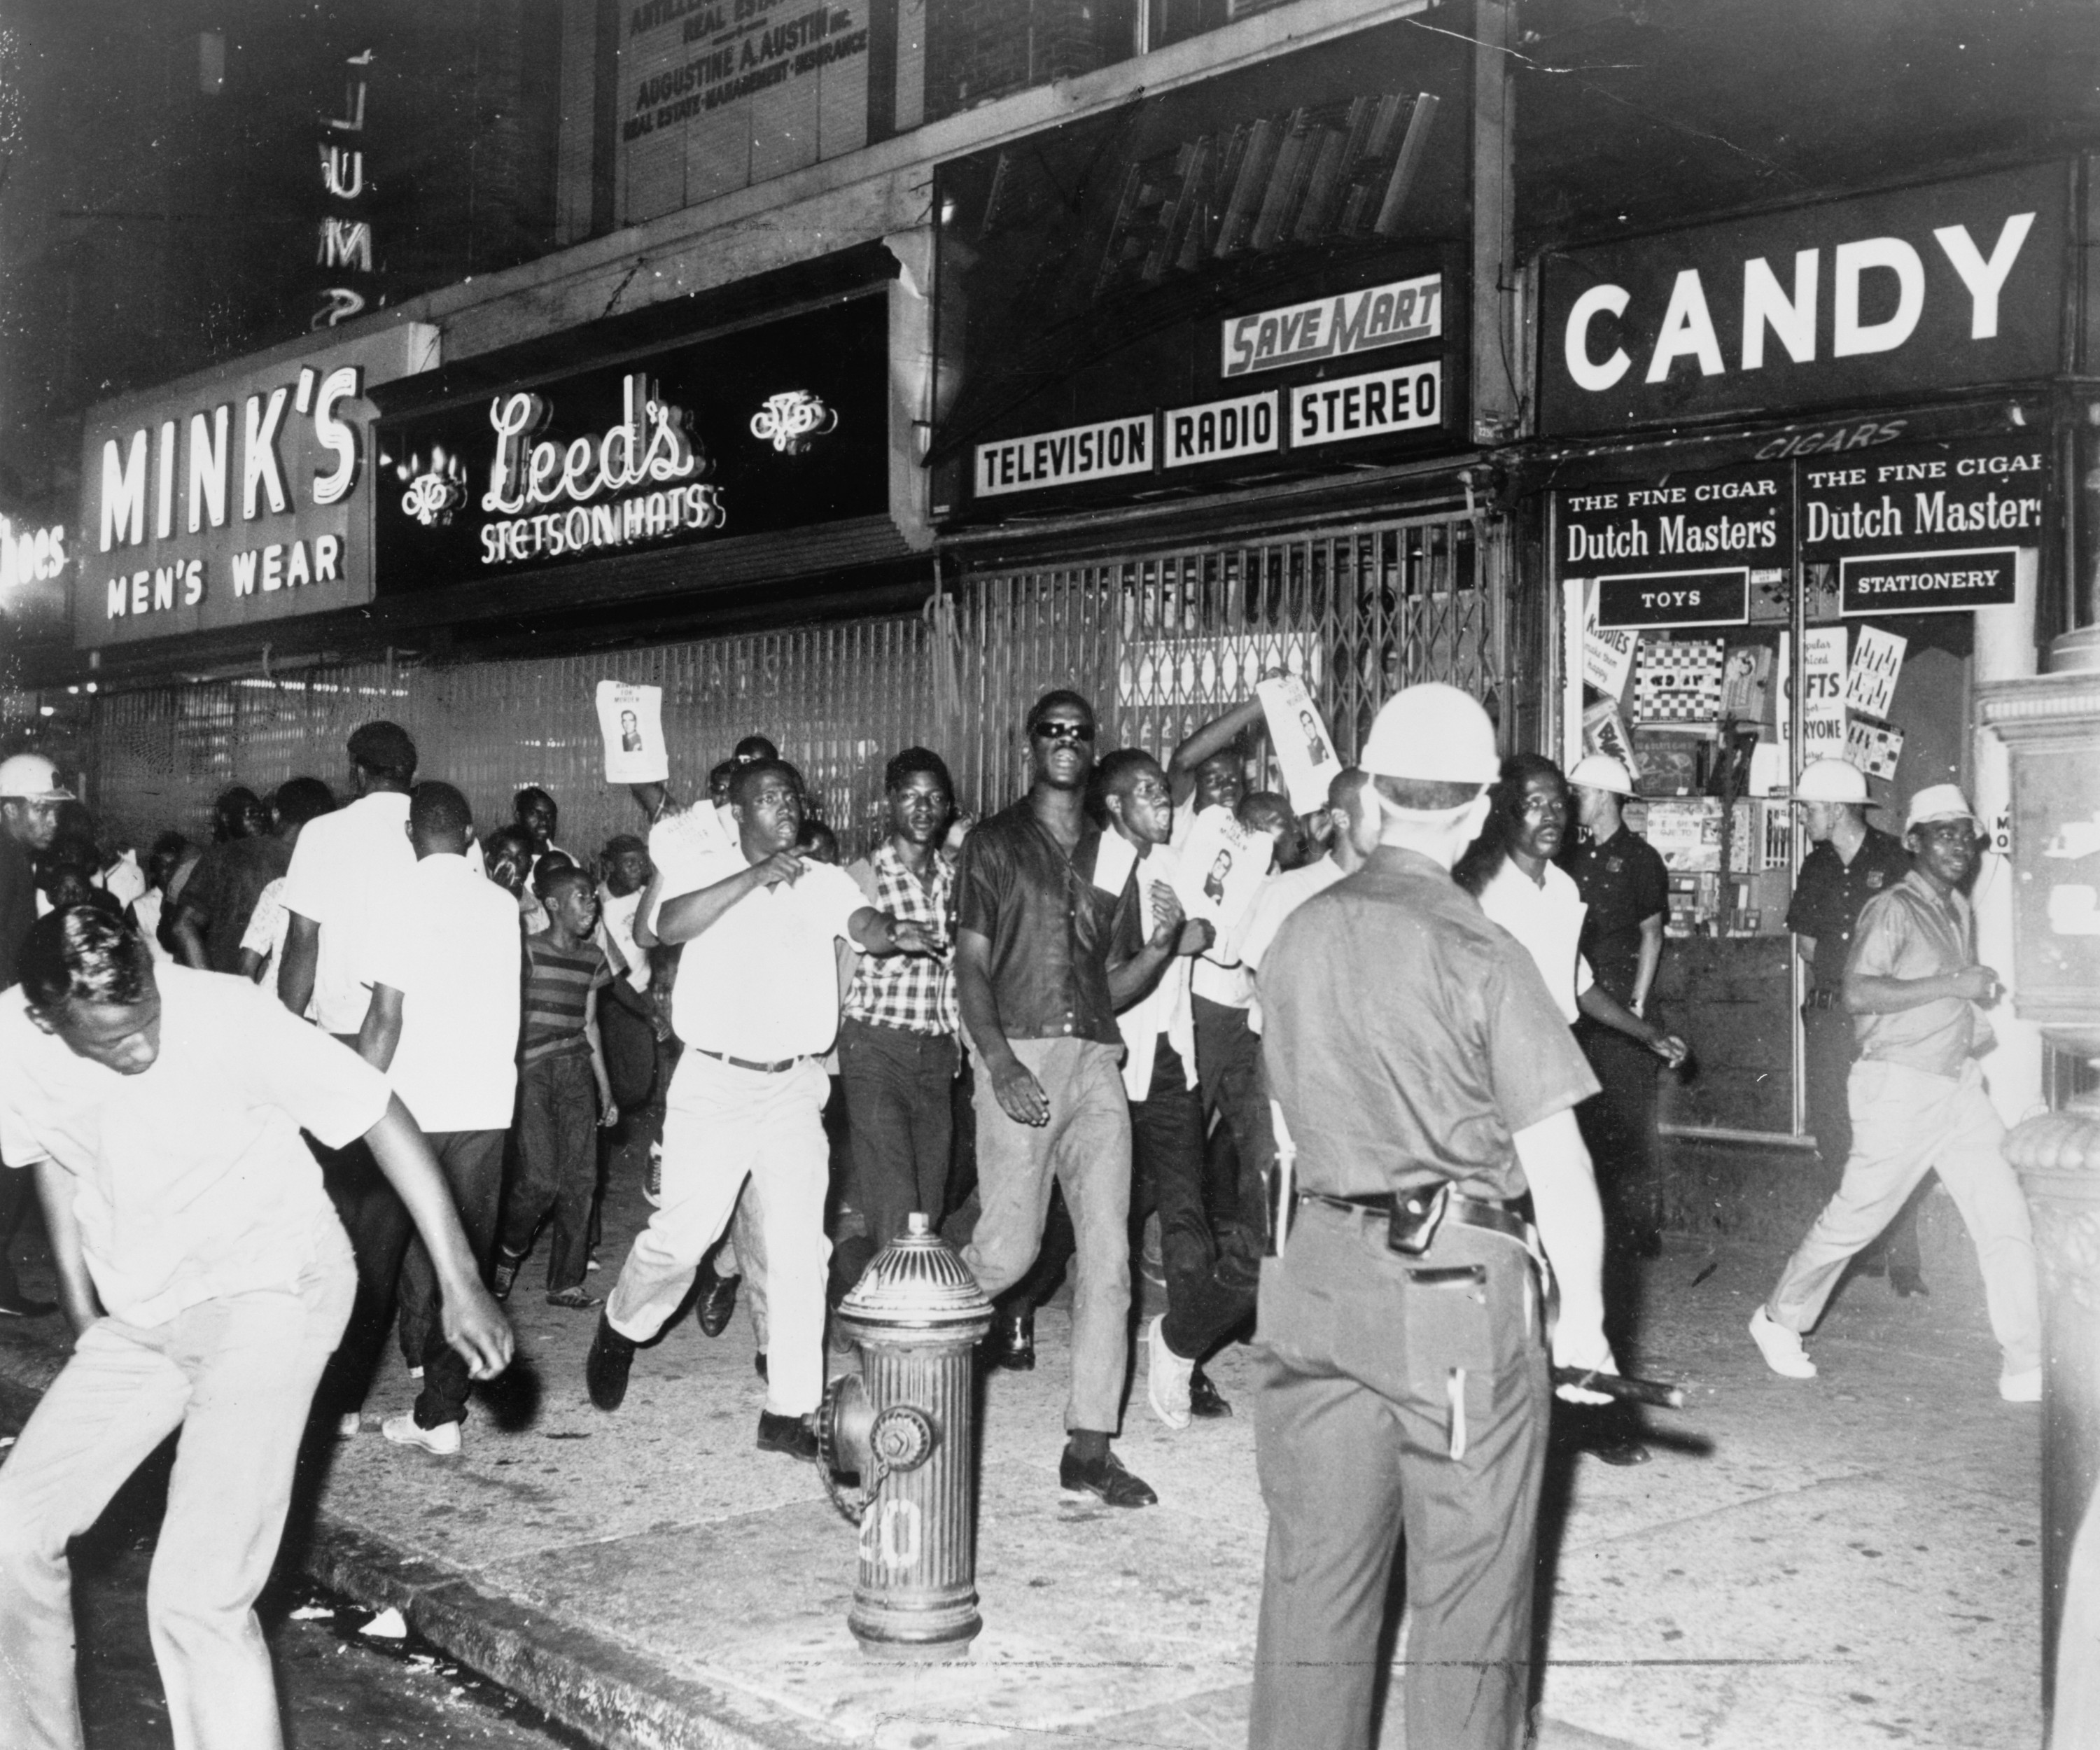 race riot essay Columbia race riots essay submitted by brice-adkins words: 687 columbia riot the 1964 columbian race riot was started when two african americans, gladys stevenson and her son, james.